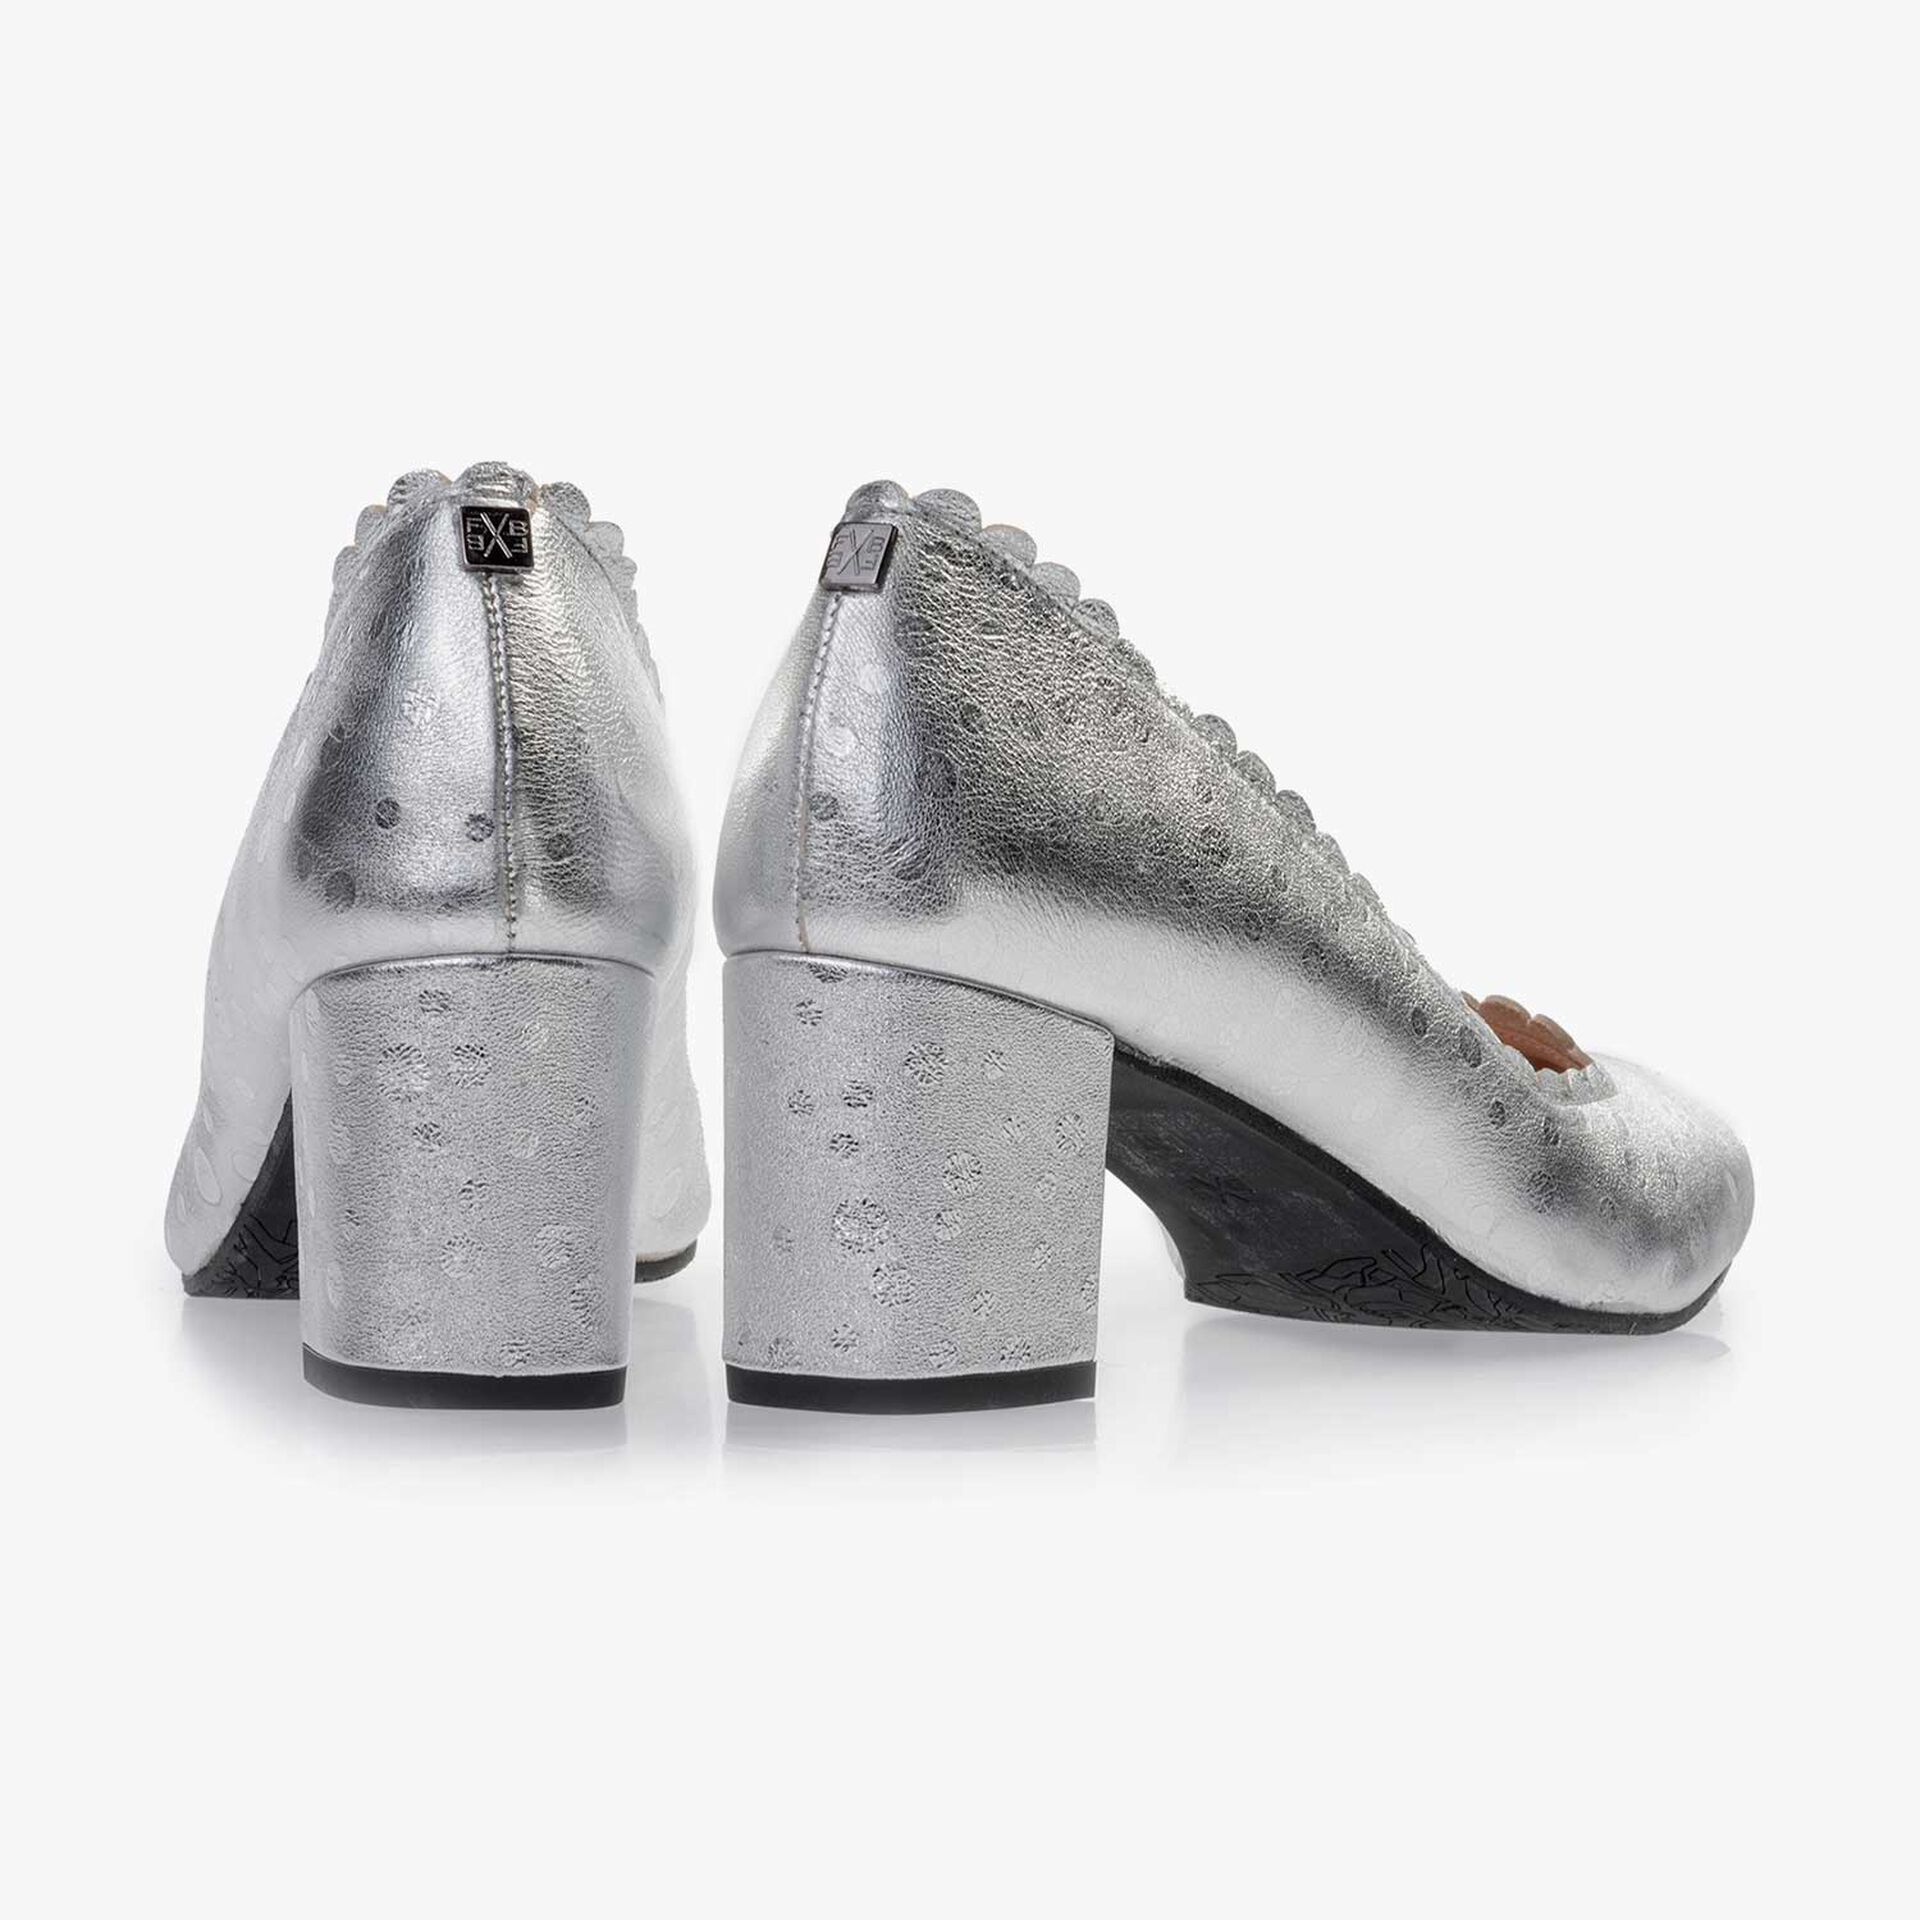 Silver-coloured patterned leather pumps